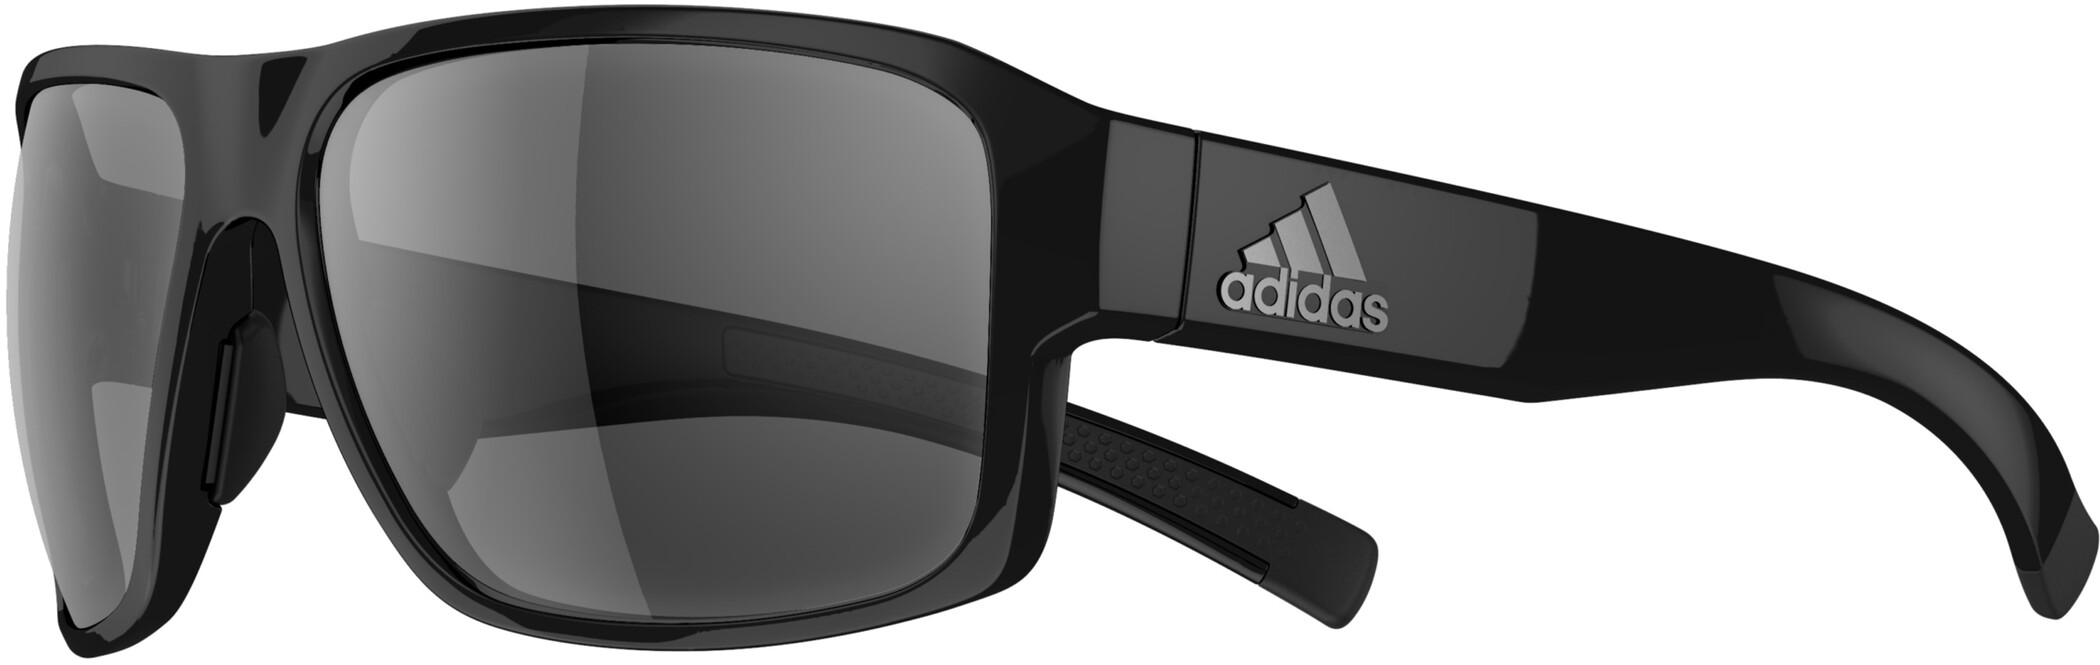 adidas Jaysor Solbriller, black shiny/grey (2019) | Glasses